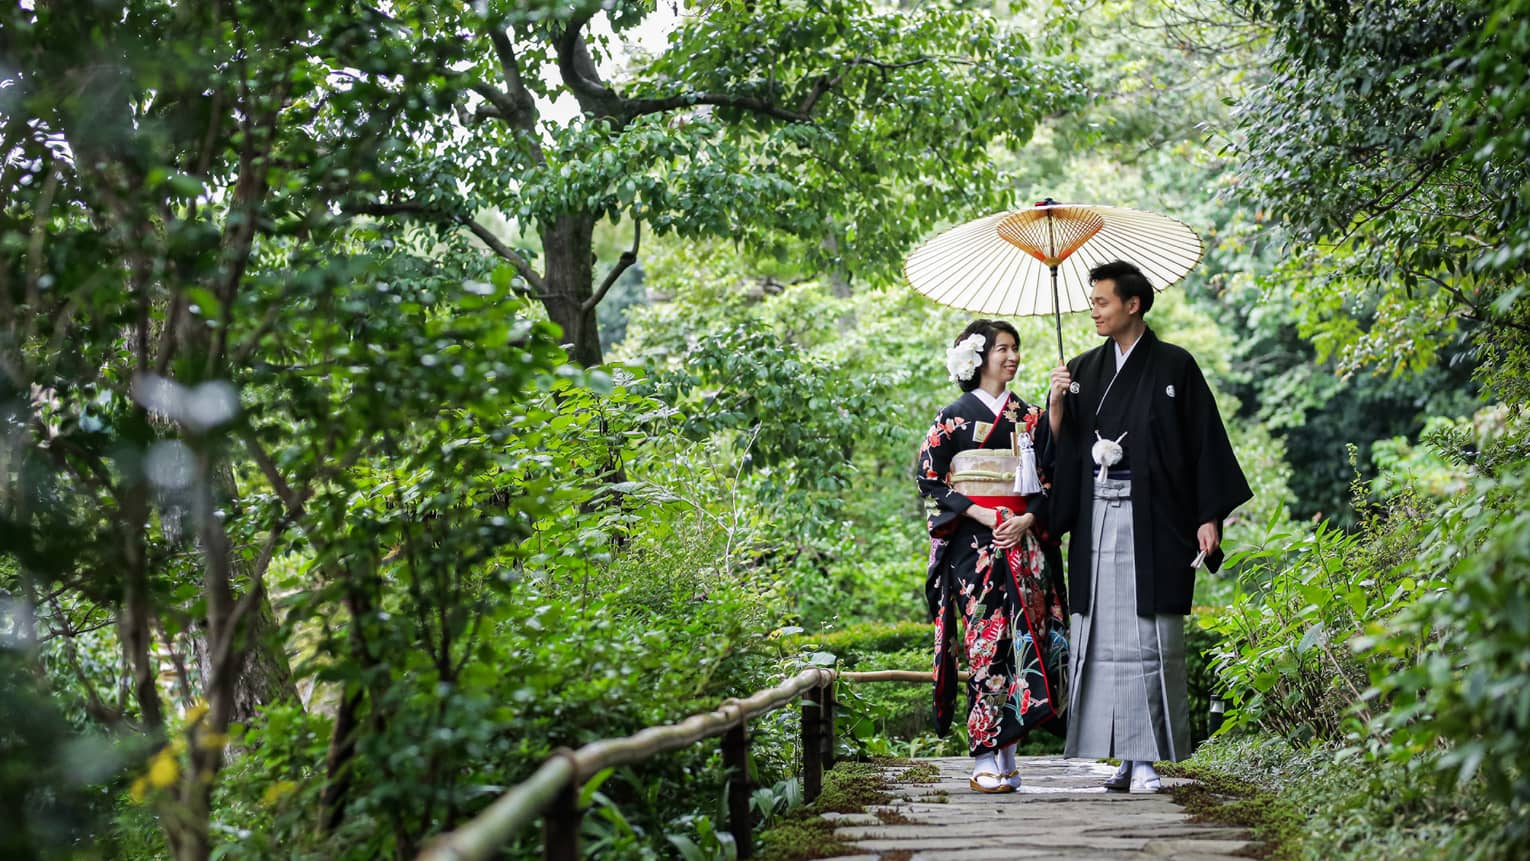 Couple wearing traditional Kyoto dress walk down stone path surrounded by trees